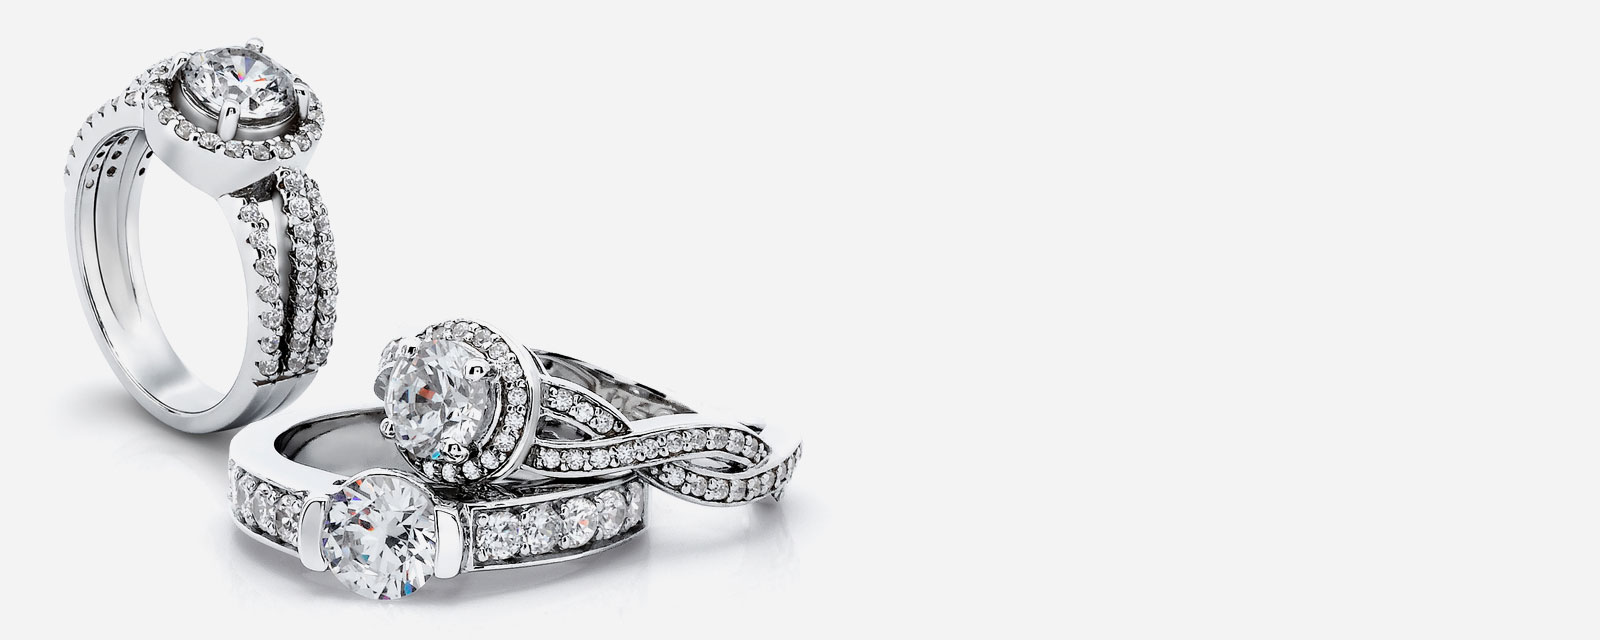 Engagement Rings In York, PA. Shop our extensive collection of engagement rings in York, PA.Visit our jewelry store today and find the perfect design for you. Scott & Company Fine Jewelers New Oxford, PA